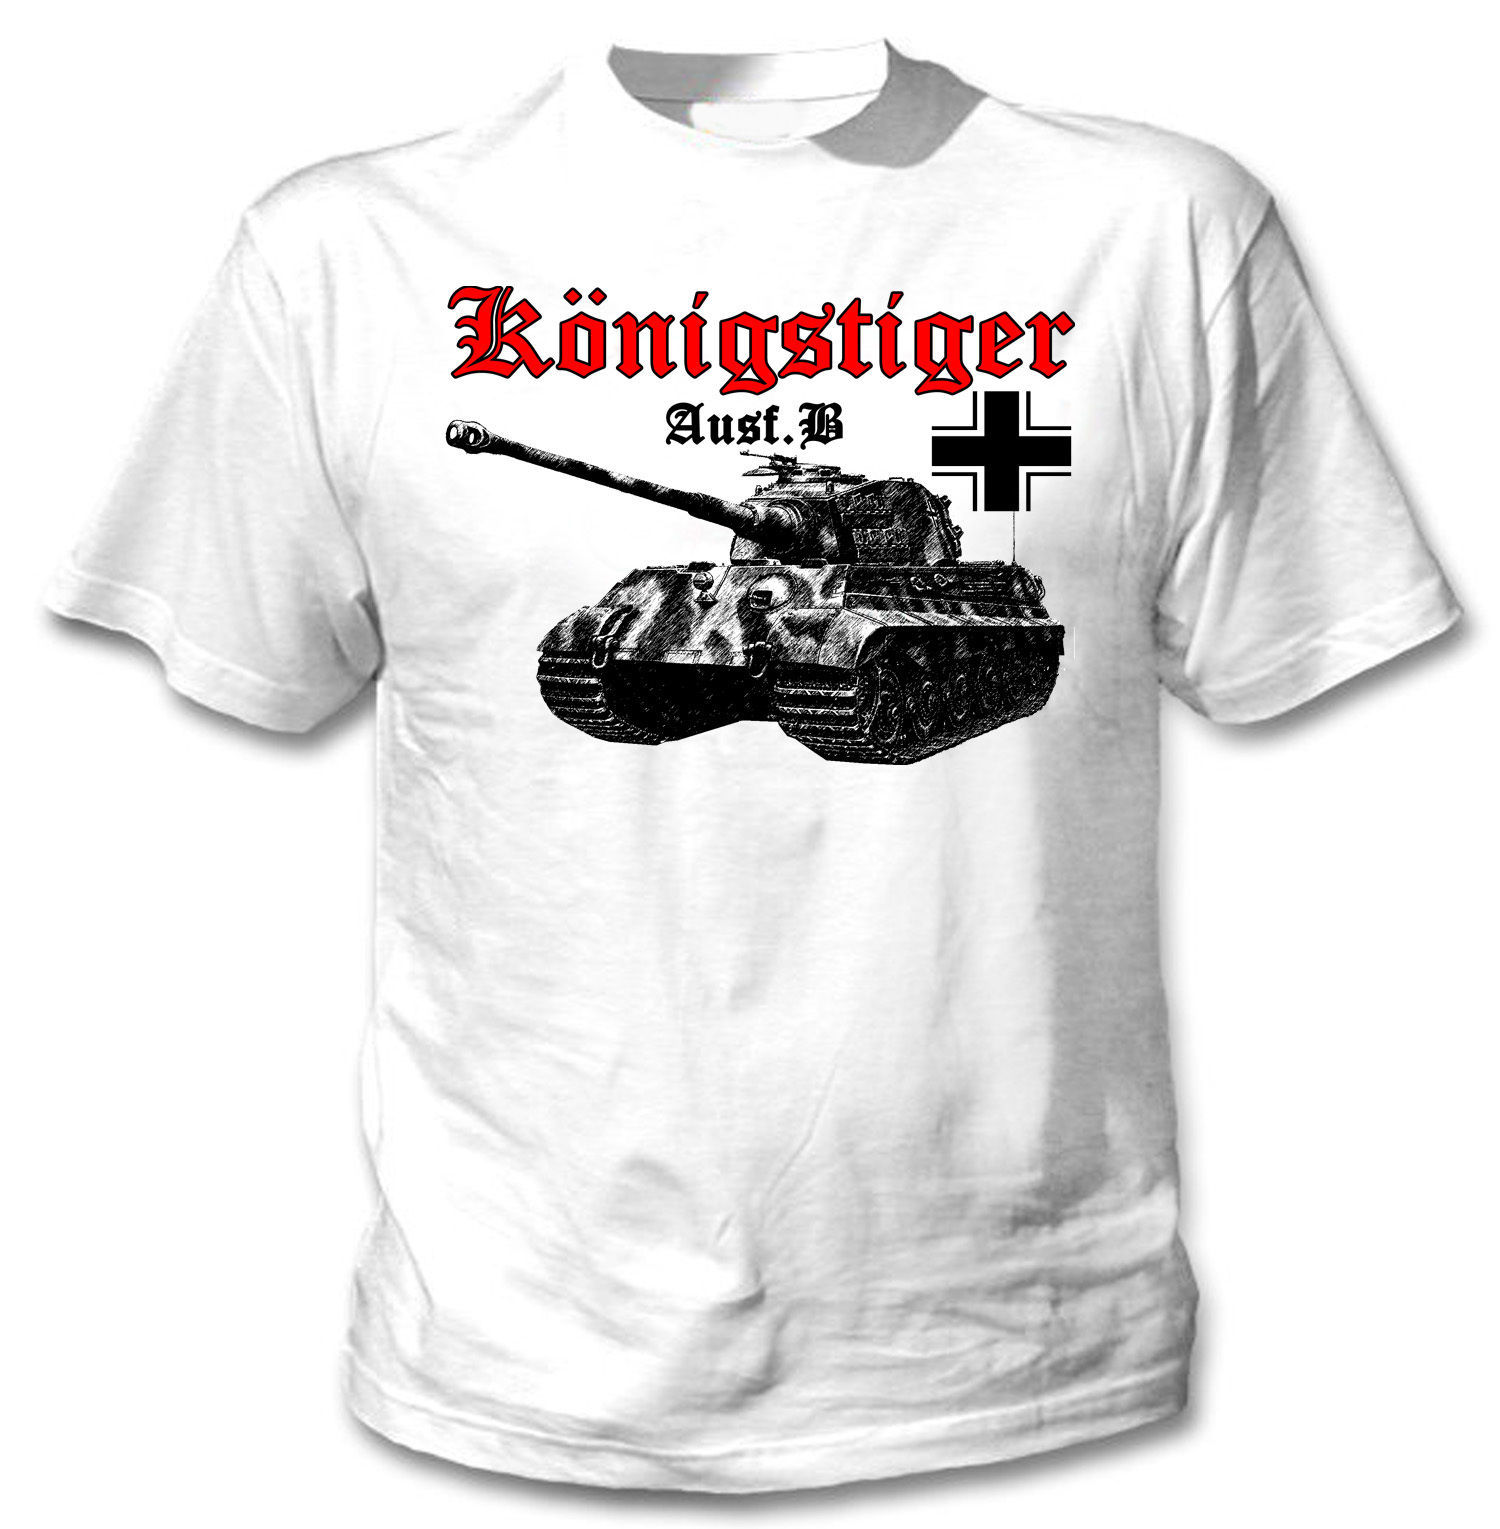 Primary image for KONIGSTIGER PANZERKAMPFWAGEN II WWII- NEW AMAZING GRAPHIC TSHIRT- S-M-L-XL-XXL